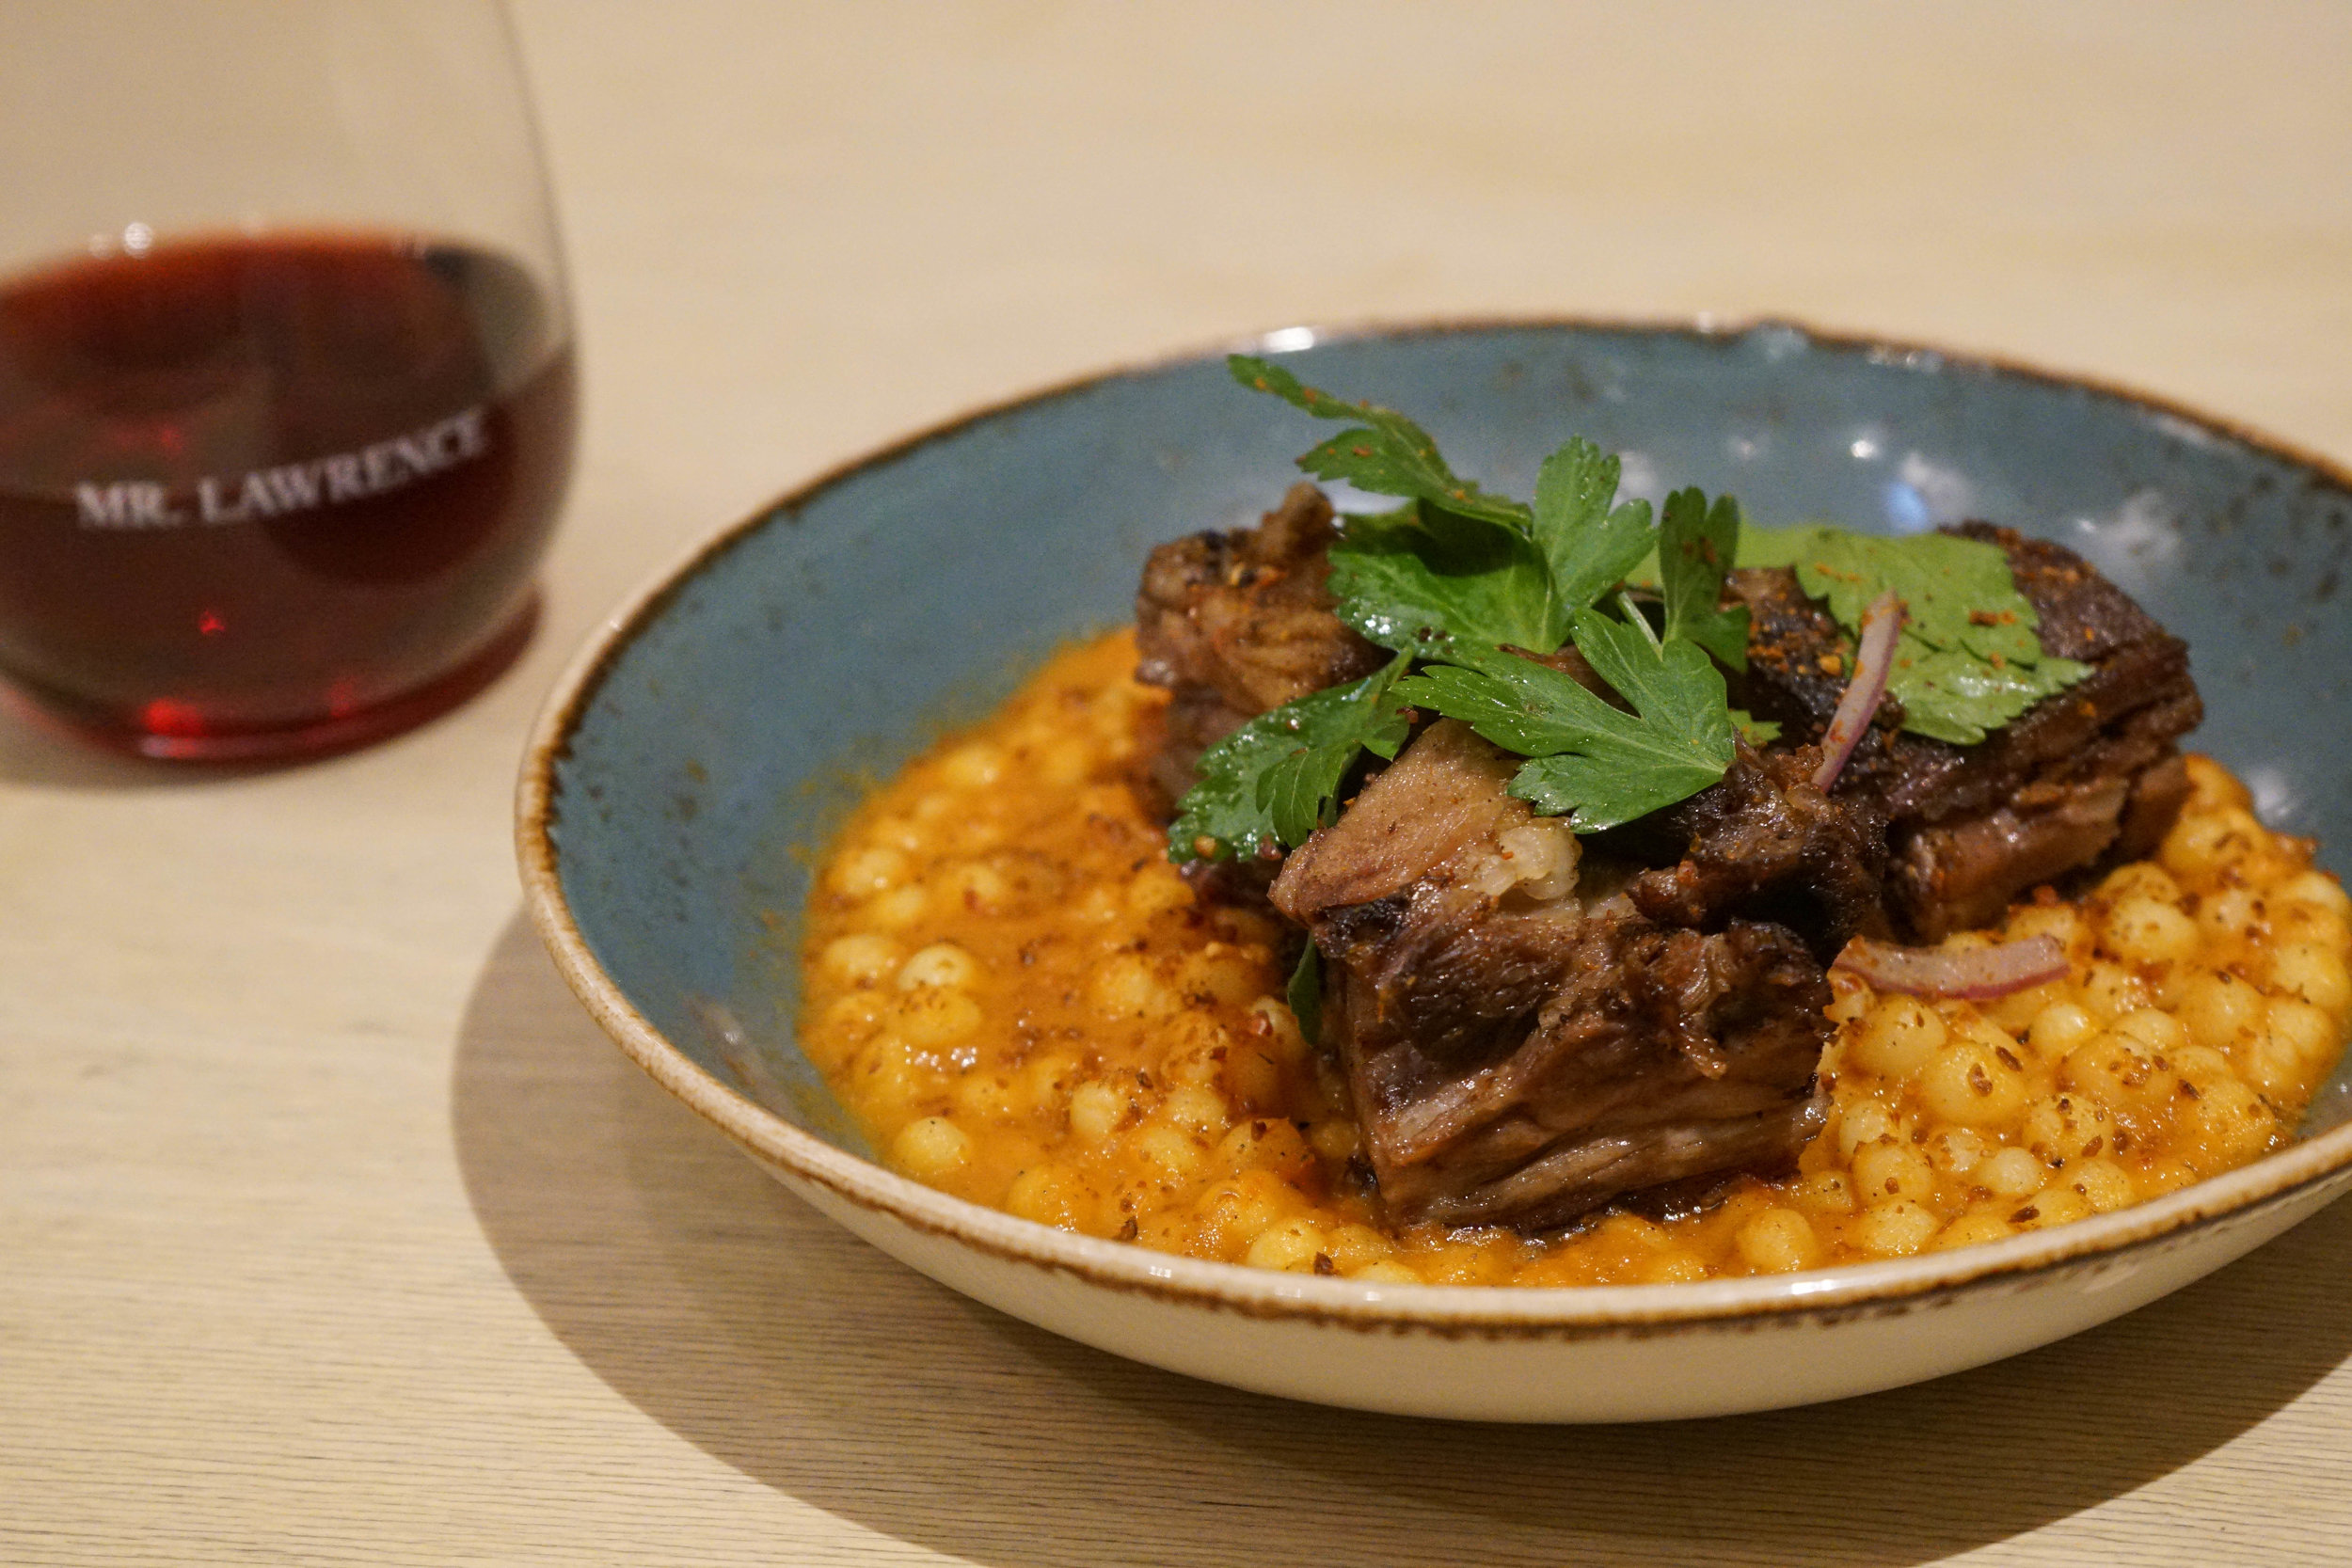 Slow-cooked winter warmers in Melbourne